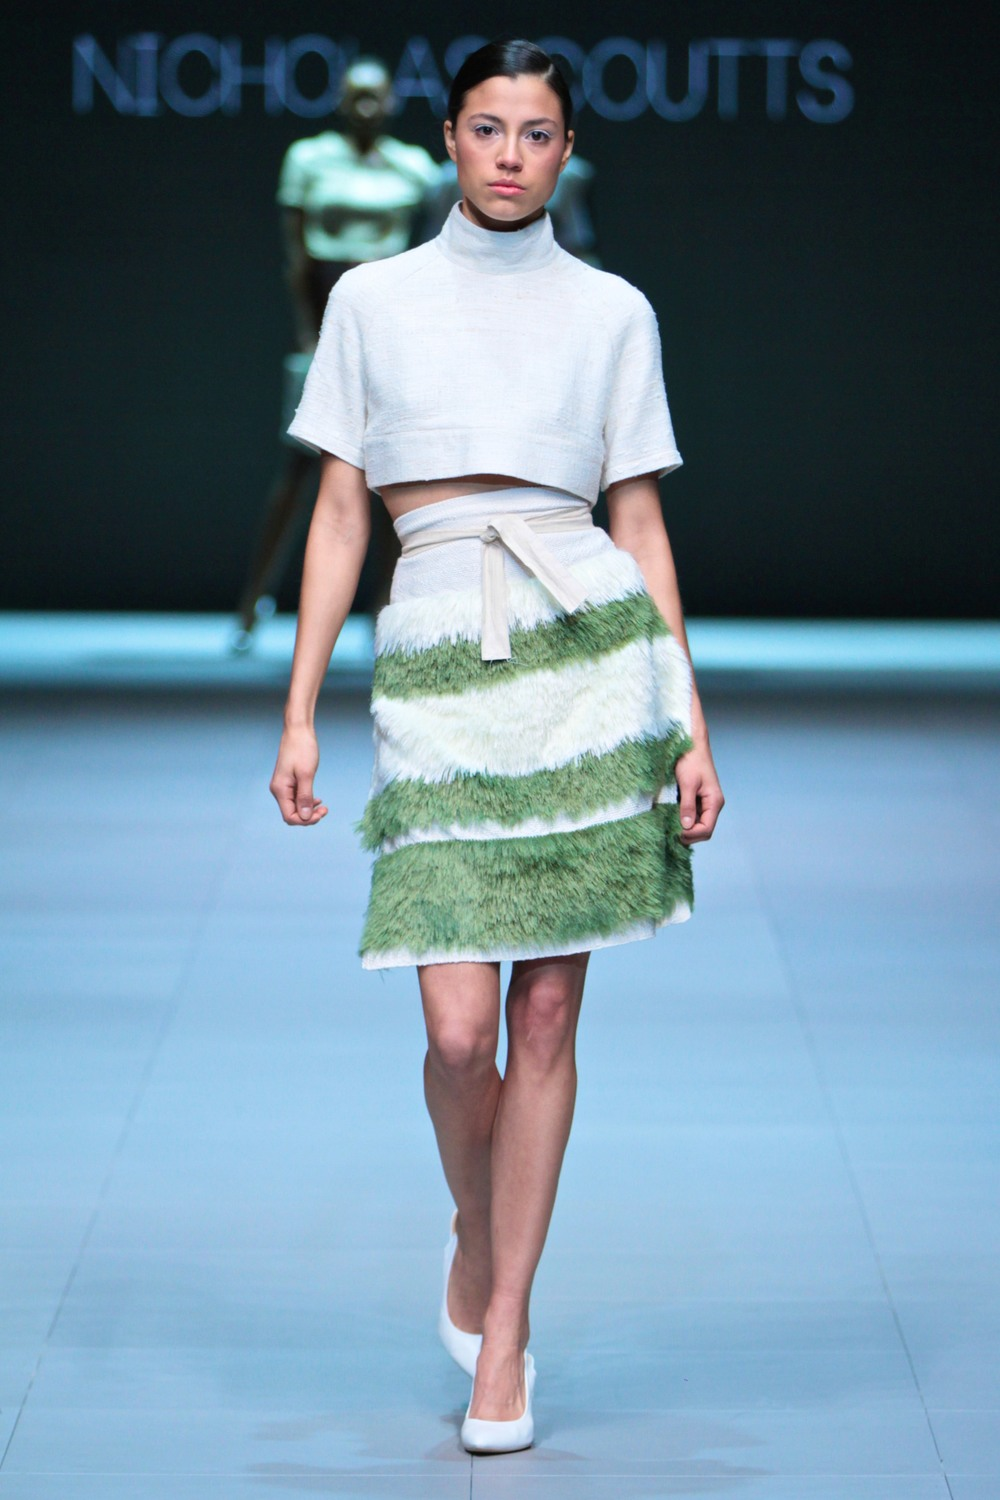 14_MBFWCT_SDR_0463_NicholasCoutts.jpg